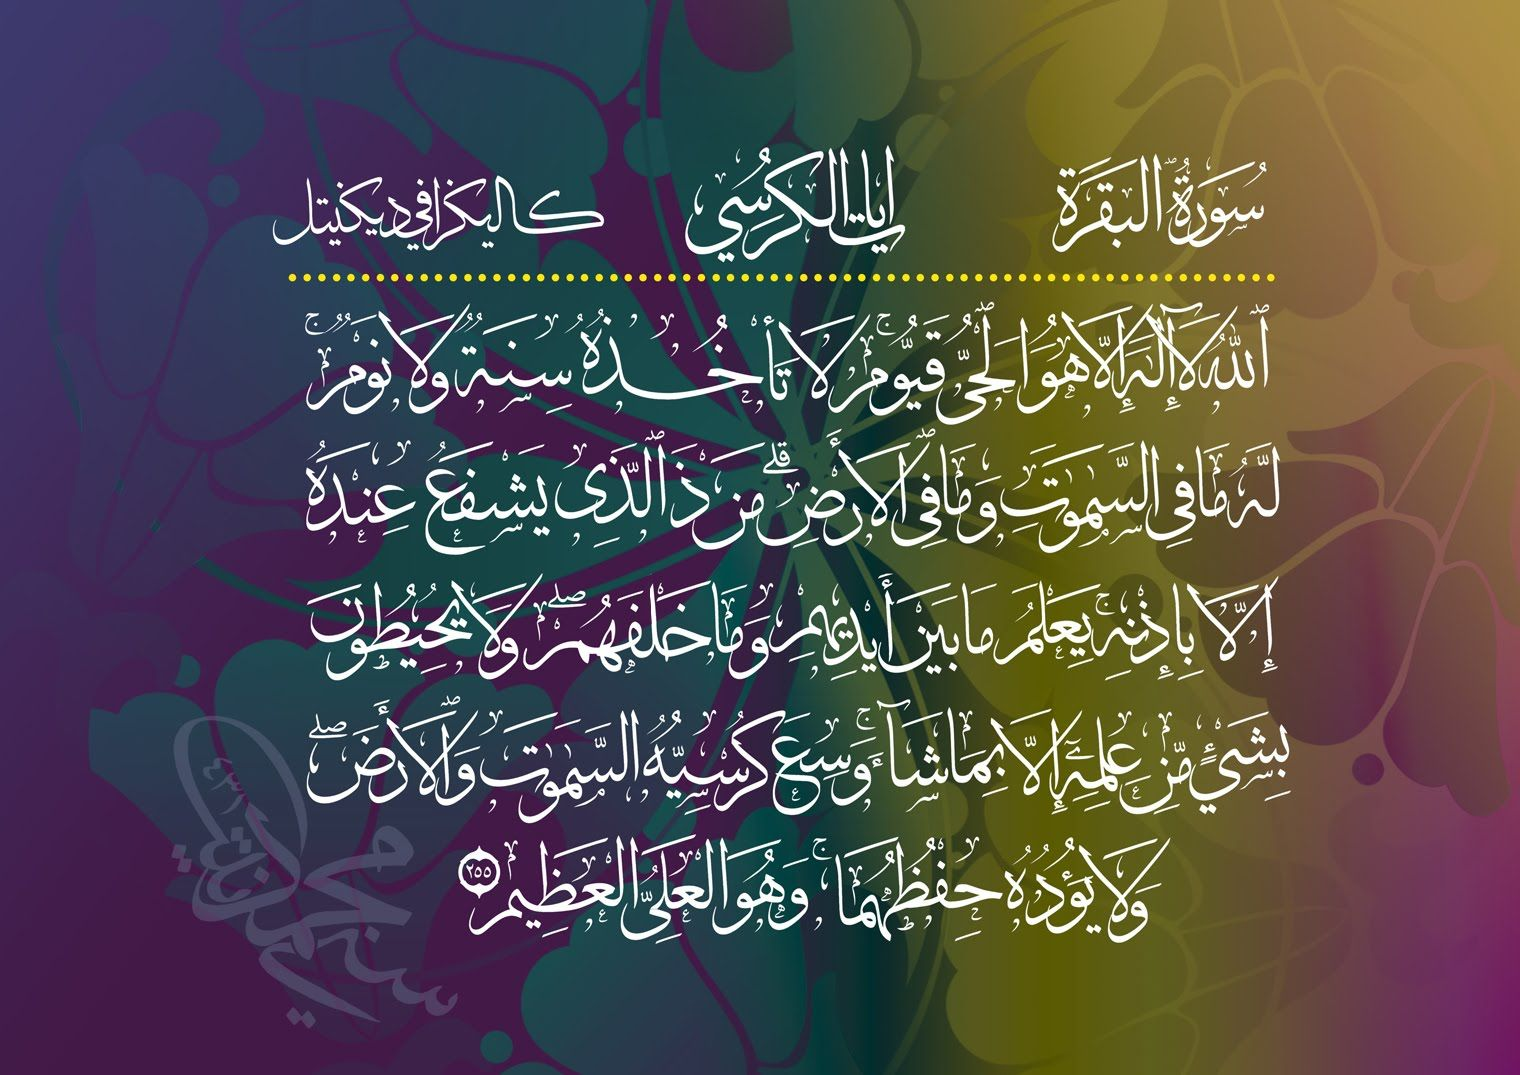 Download Image Kaligrafi Ayat Quran Pc Android Iphone And In